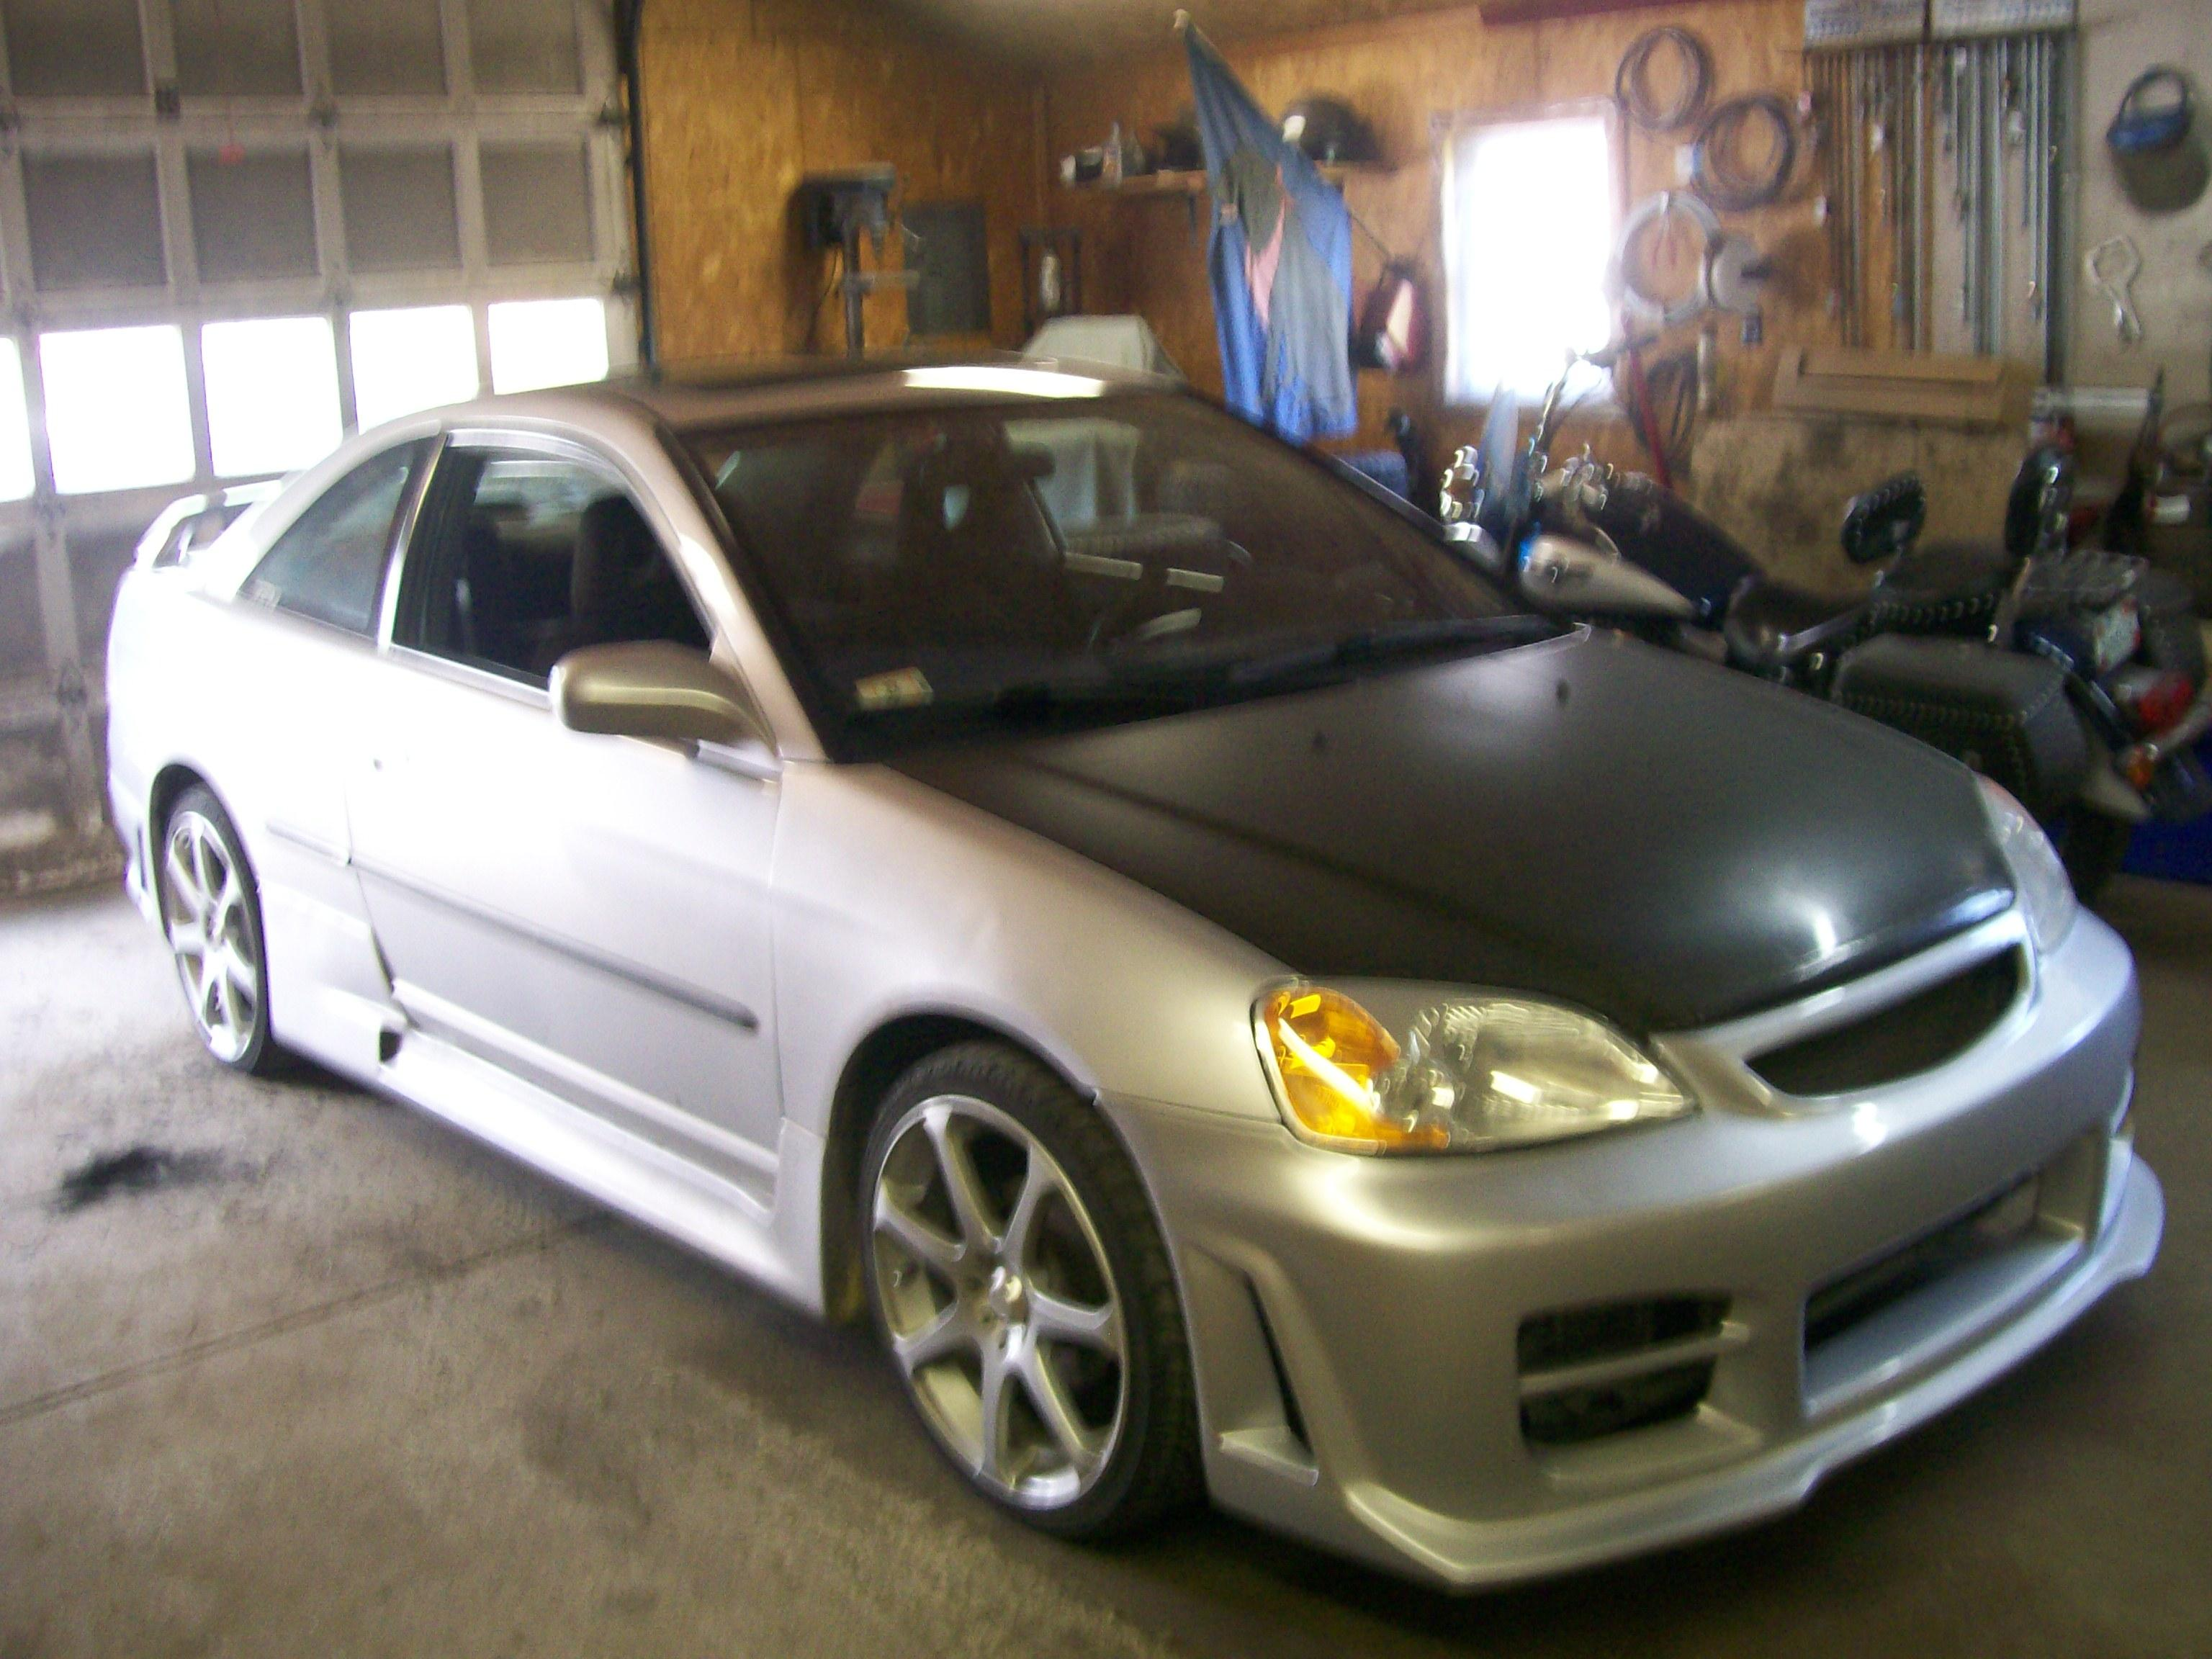 IrwinMobile 2001 Honda Civic